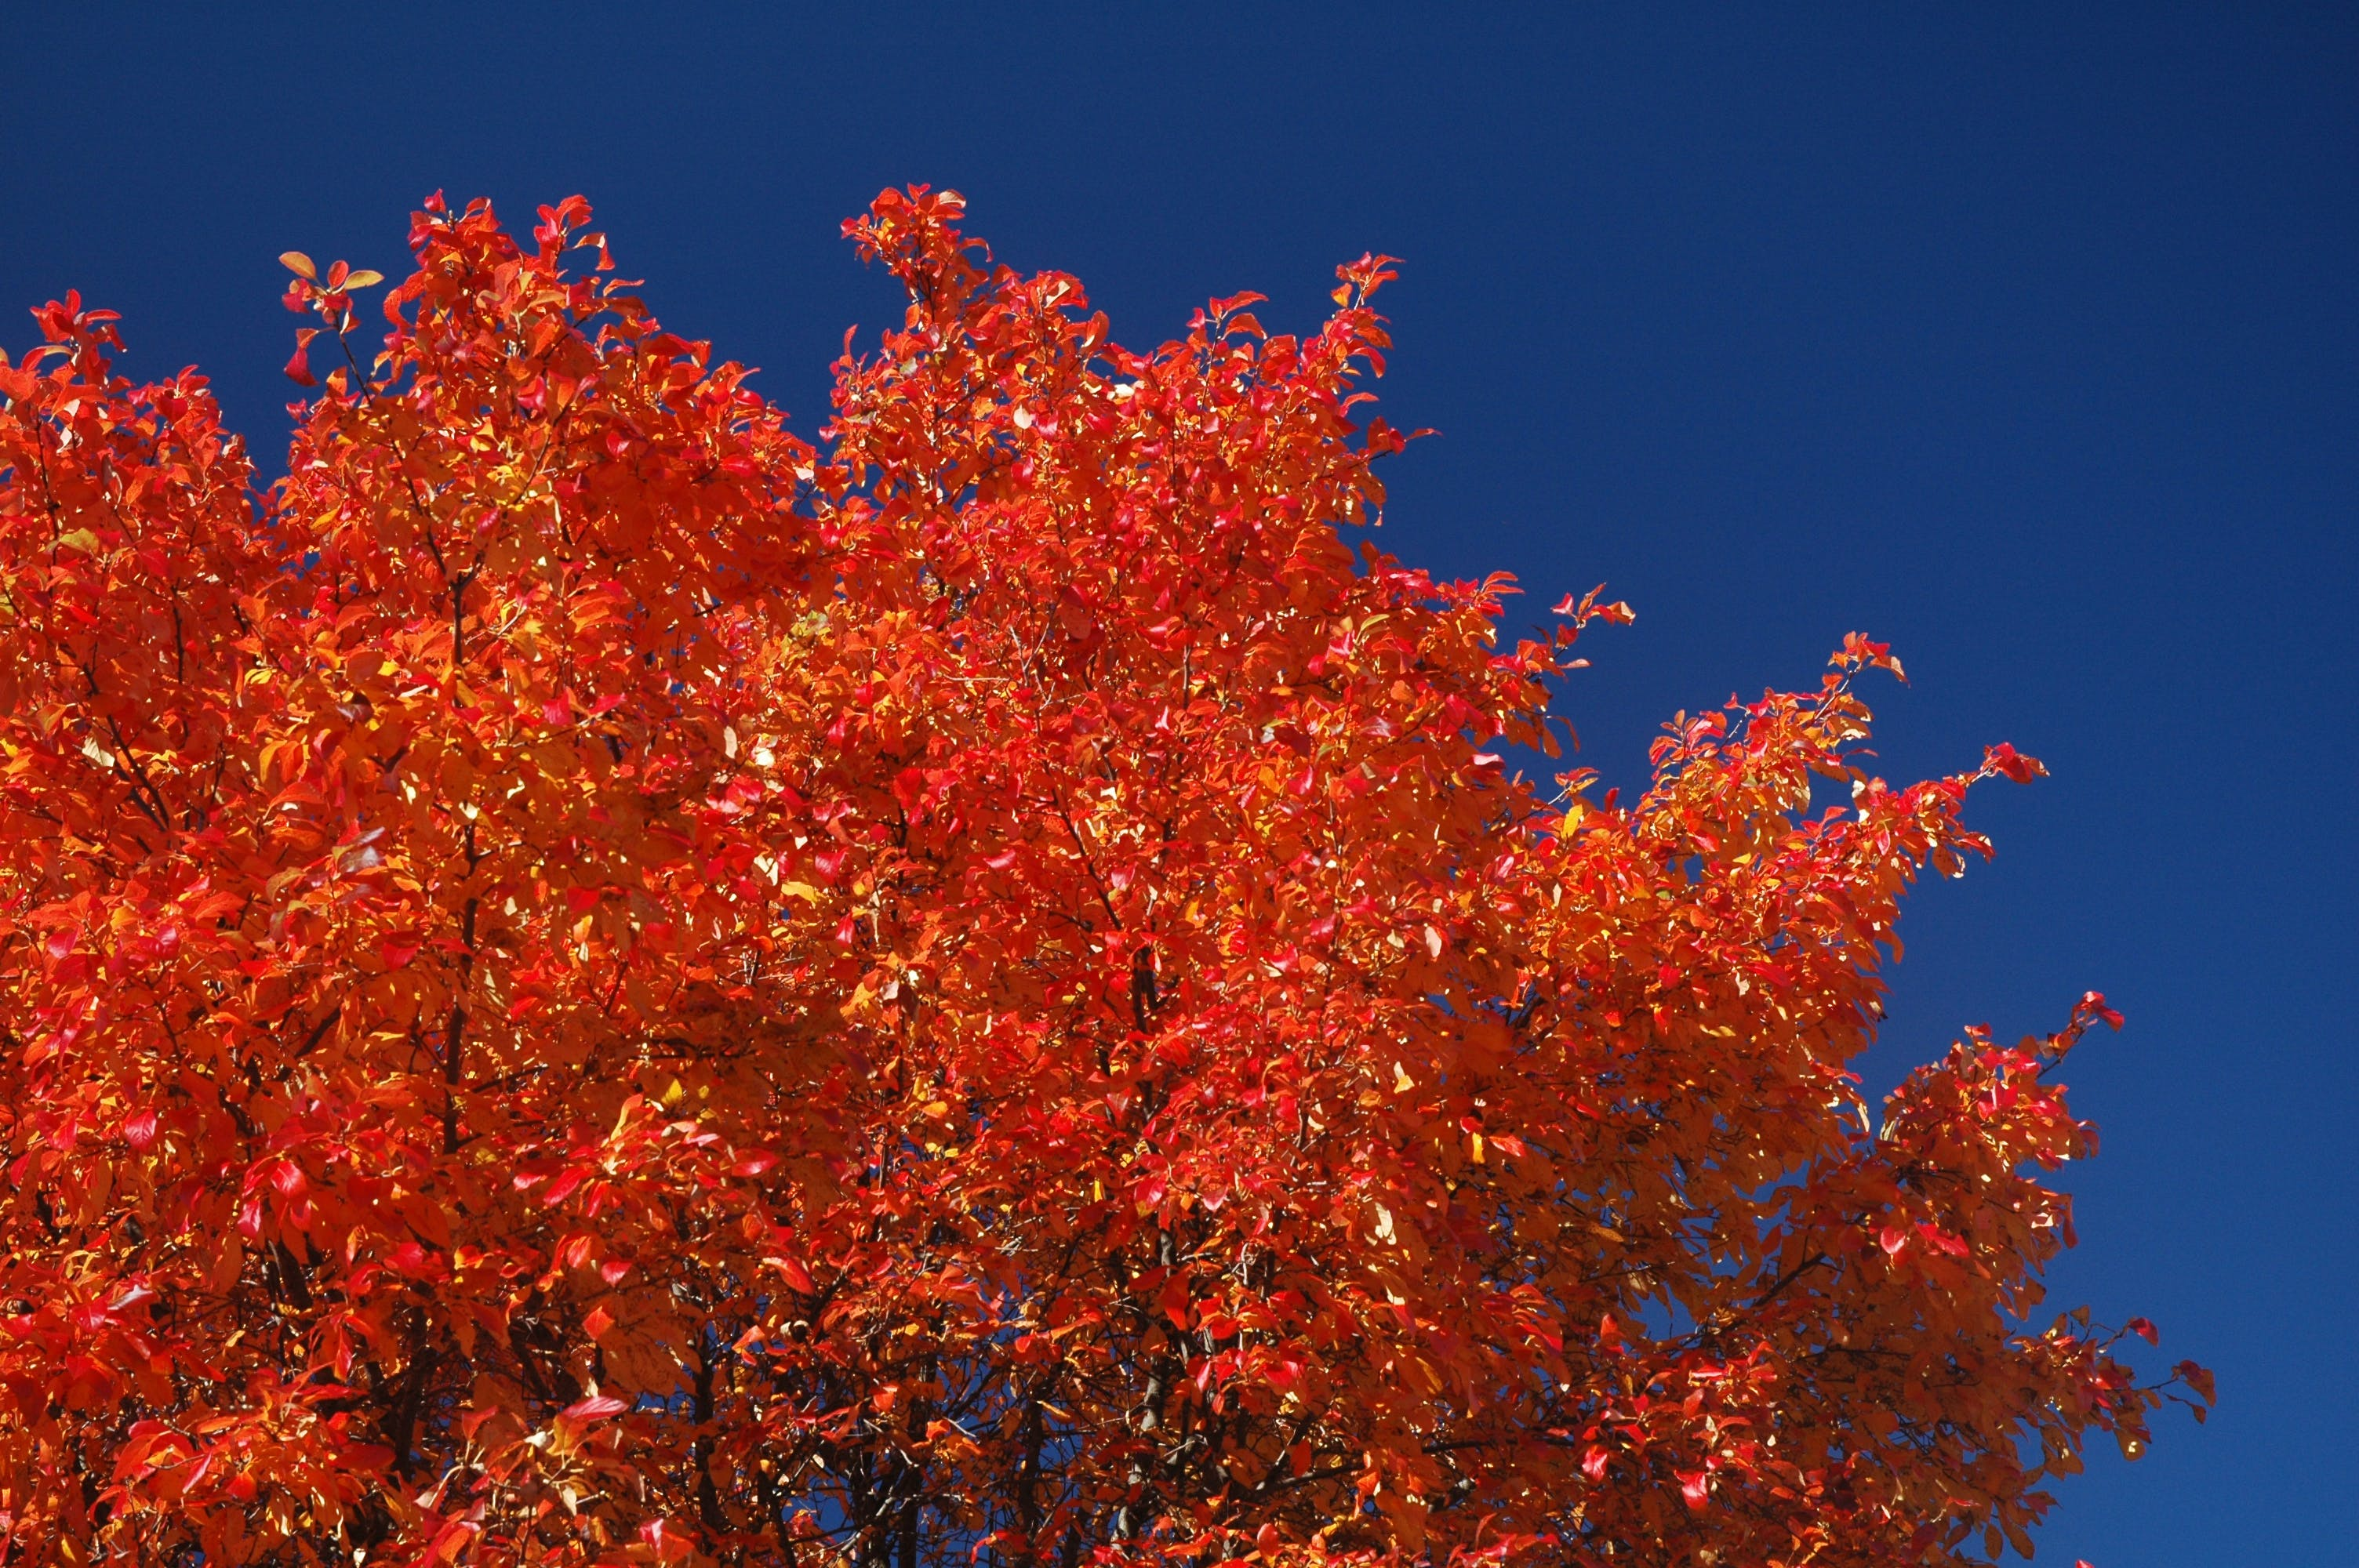 Free stock photo of fall color